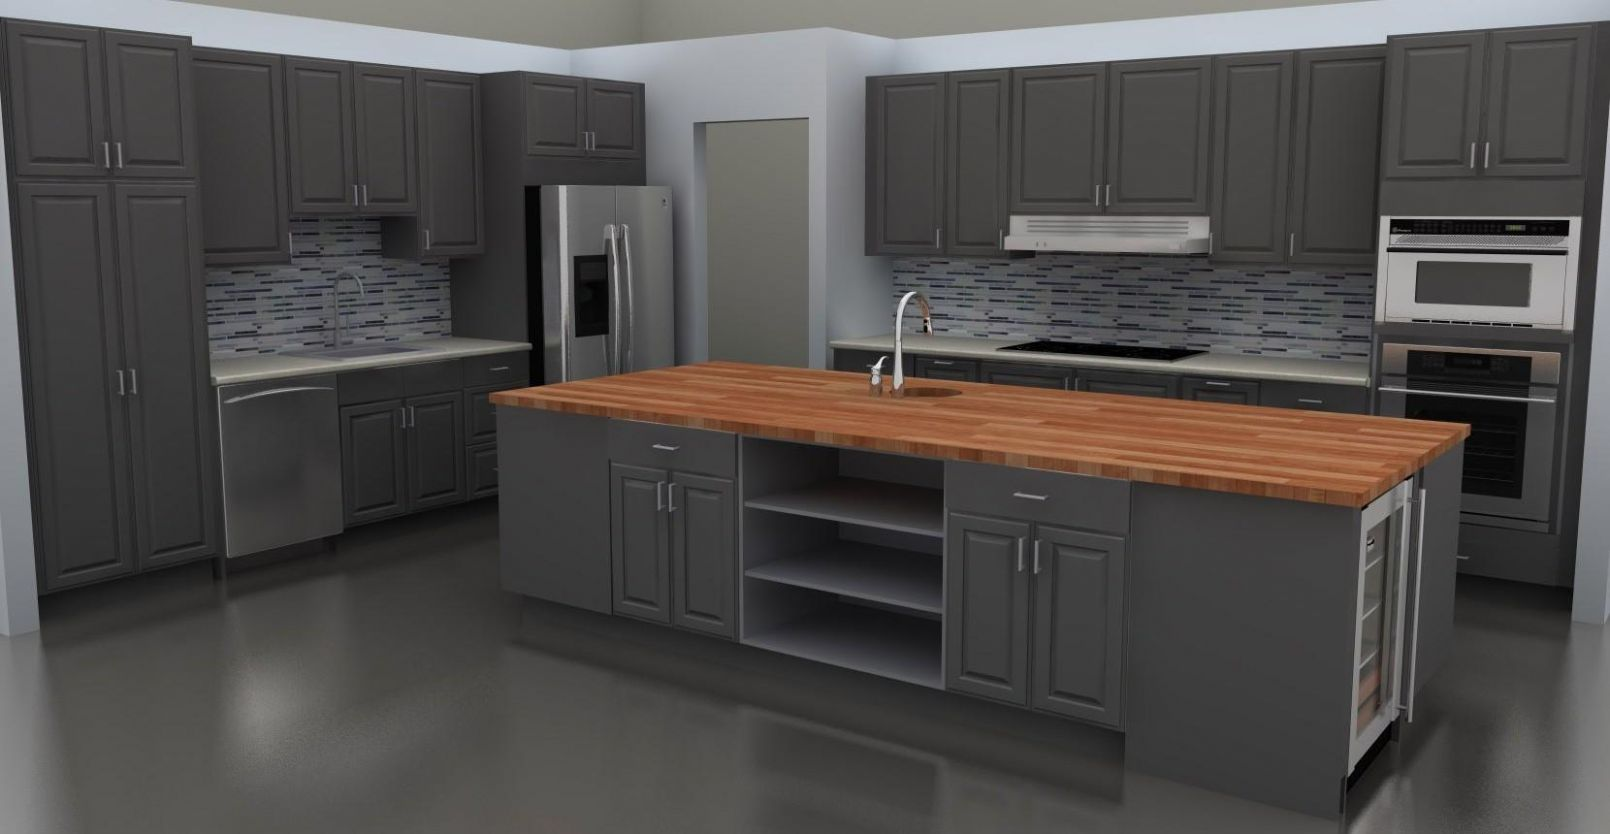 Mesmerizing Gray Kitchens Ideas That You Can Do For Less Than Hour ...